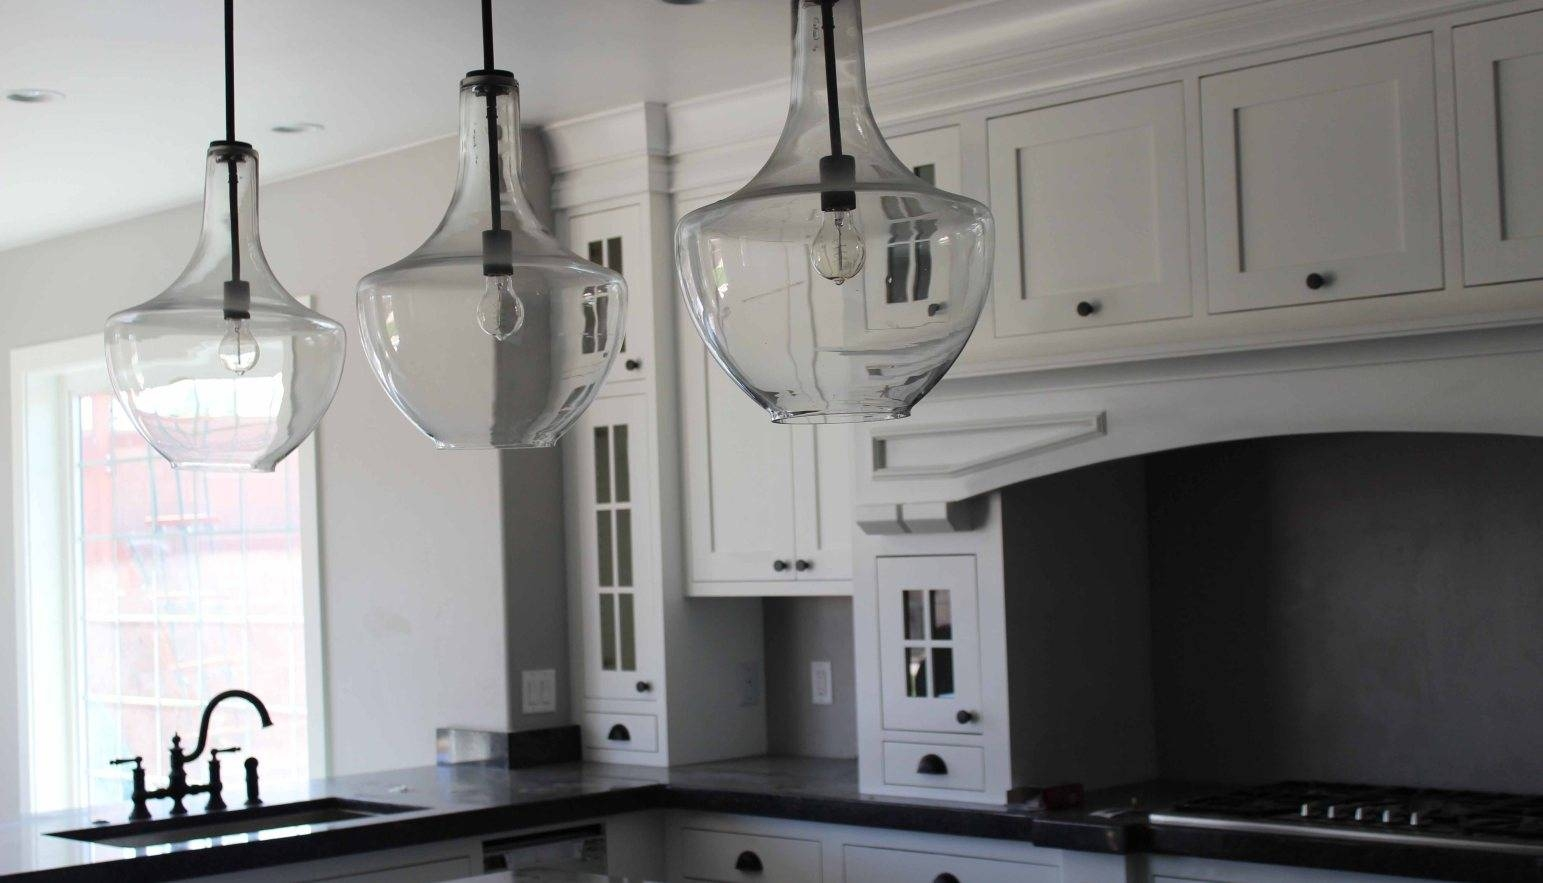 Kitchen : Praiseworthy Tiffany Hanging Kitchen Light Fixtures for John Lewis Kitchen Pendant Lighting (Image 7 of 15)